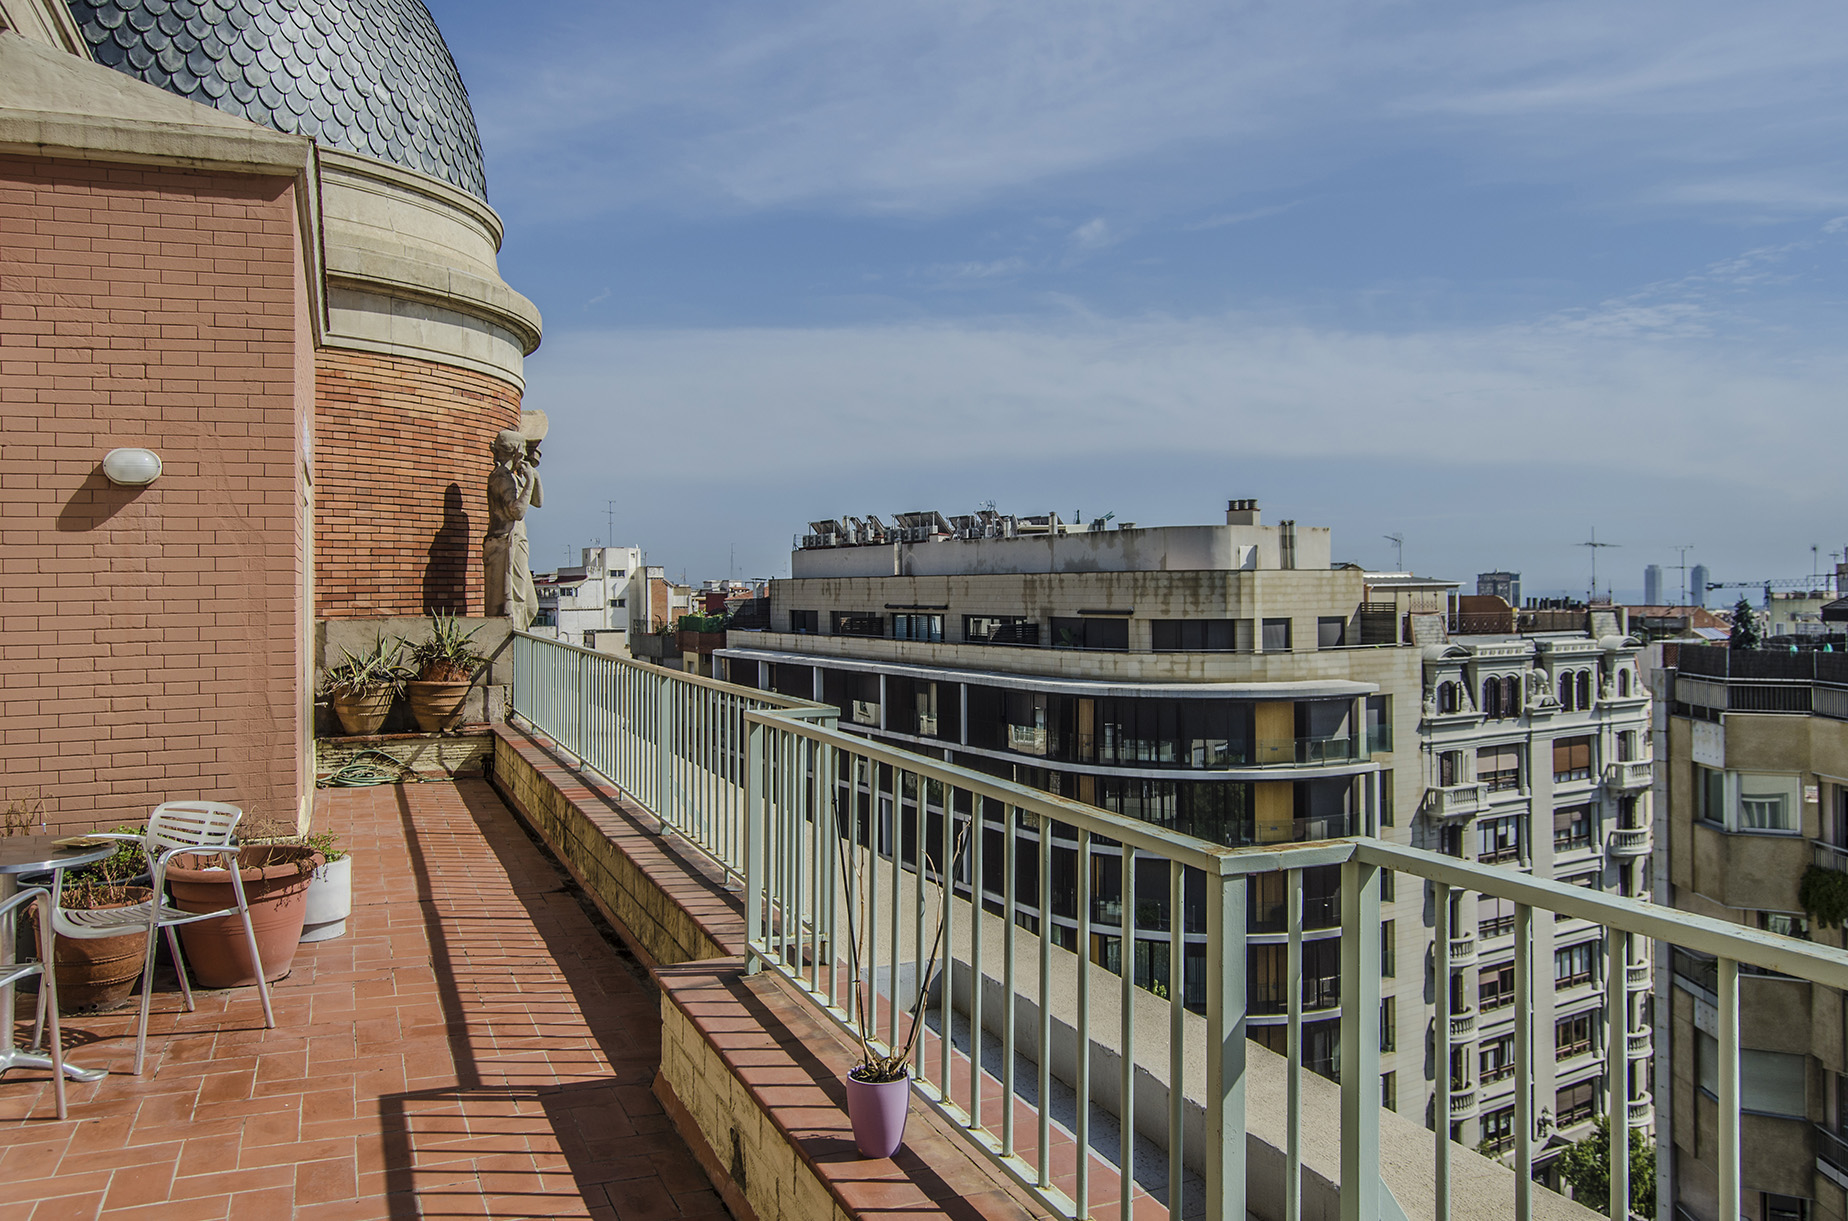 Appartement pour l Vente à Impressive Duplex Penthouse with Terraces and Excellent Views Zona Alta, Barcelona City, Barcelona, 08034 Espagne